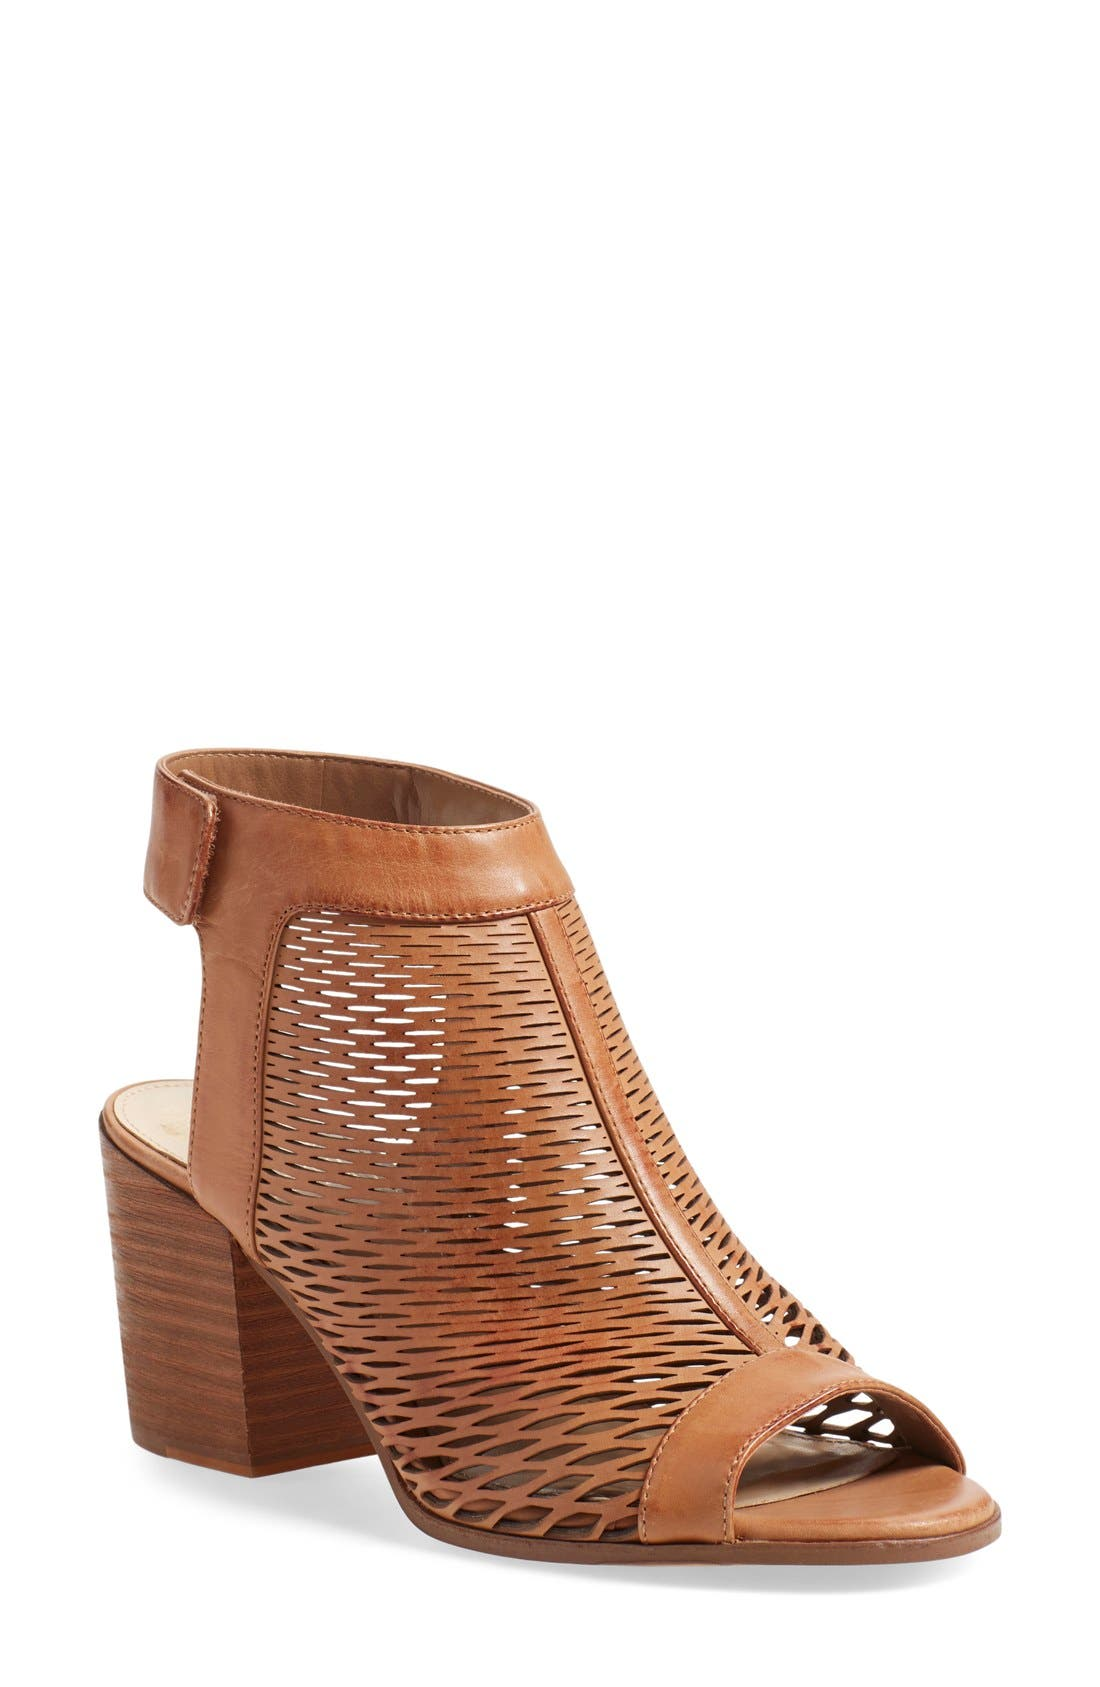 Alternate Image 1 Selected - Vince Camuto 'Lavette' Perforated Peep Toe Bootie (Women) (Nordstrom Exclusive)